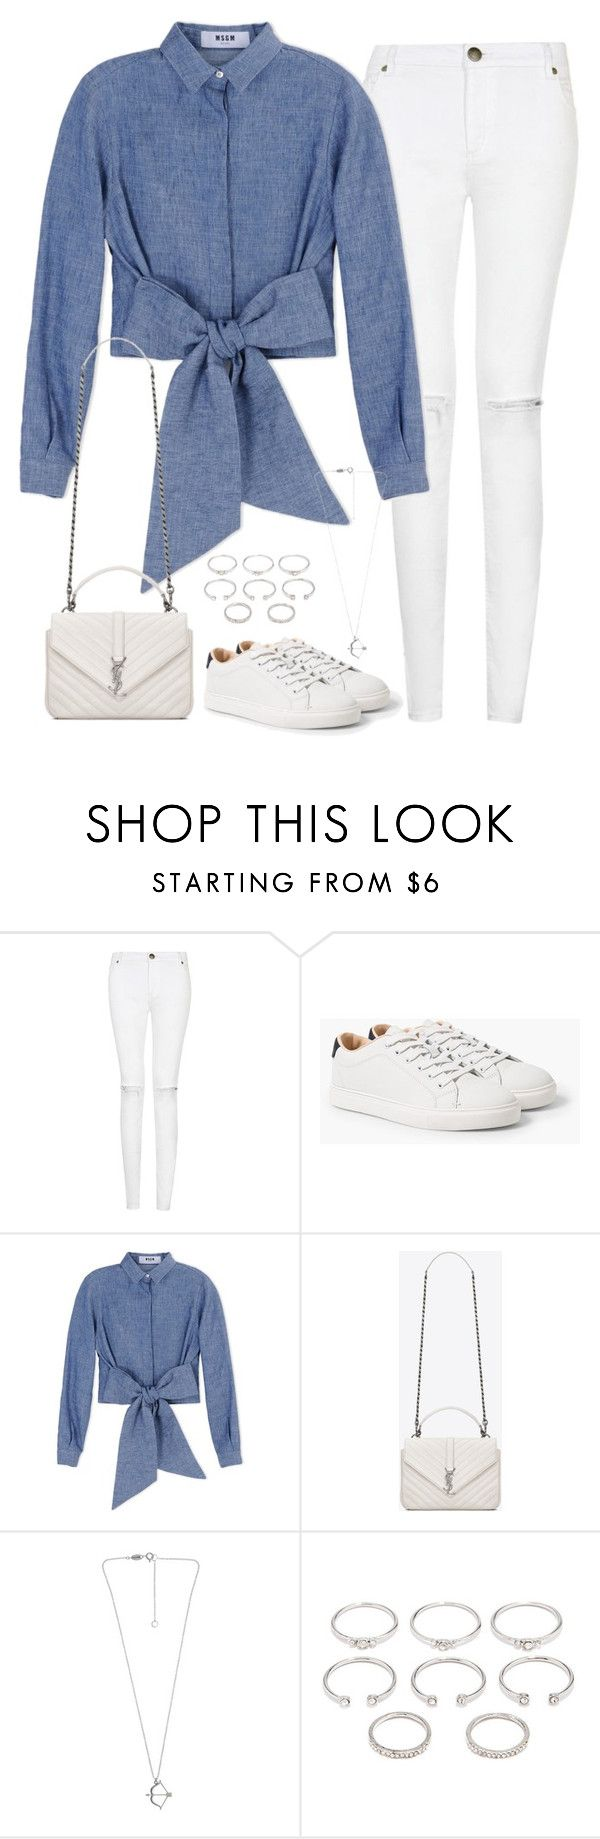 """Untitled#4297"" by fashionnfacts ❤ liked on Polyvore featuring MANGO, MSGM, Yves Saint Laurent and Forever 21"